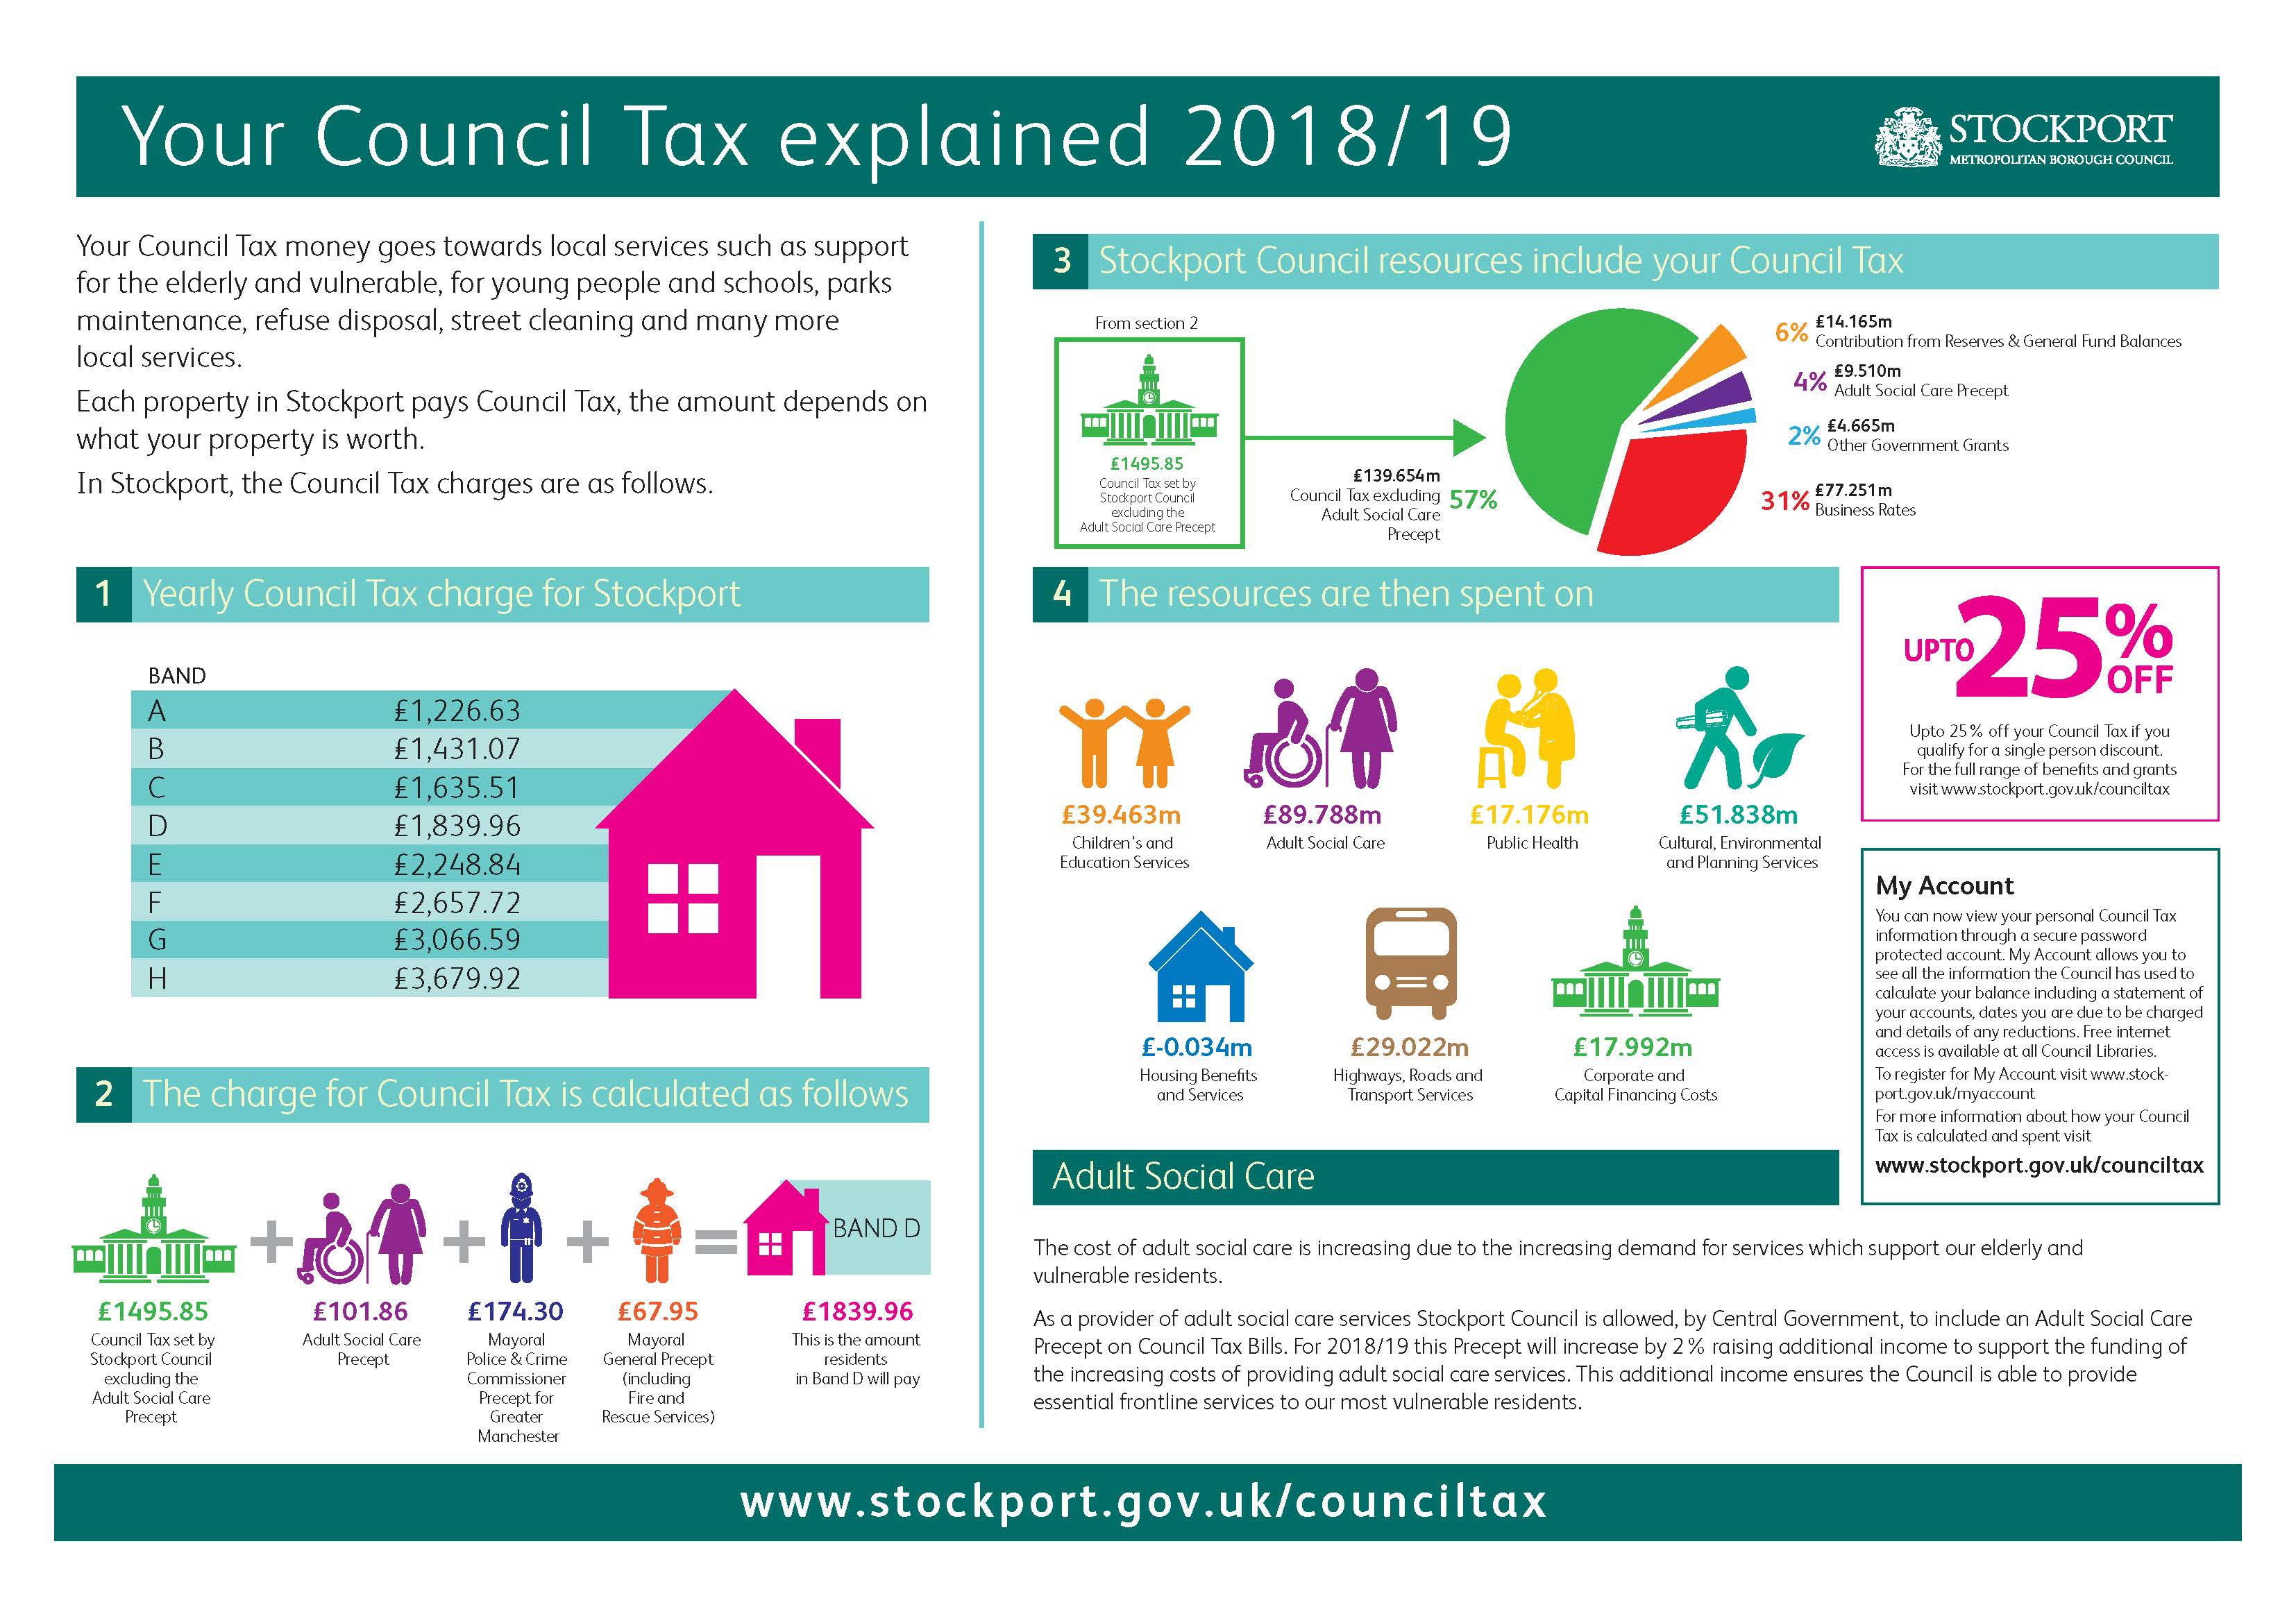 Council Tax 2017/18 explained